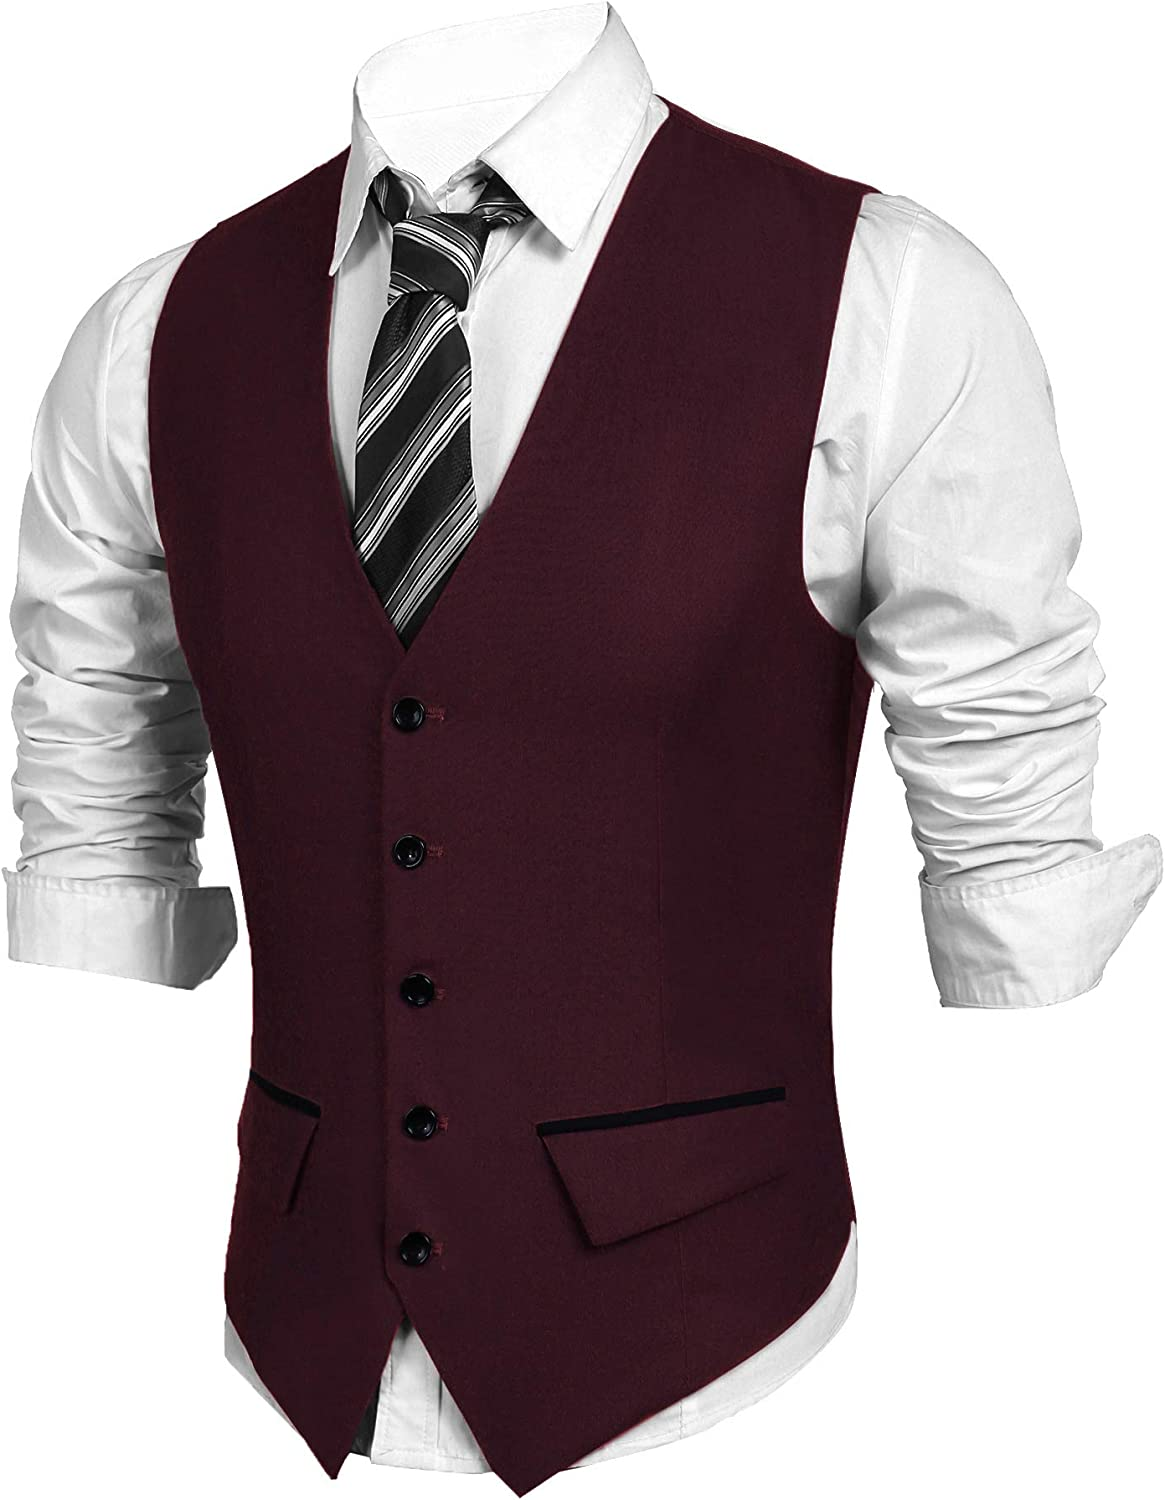 JINIDU Mens Slim Fit Dress Vest Business Suit Vest Formal Wedding Waistcoat